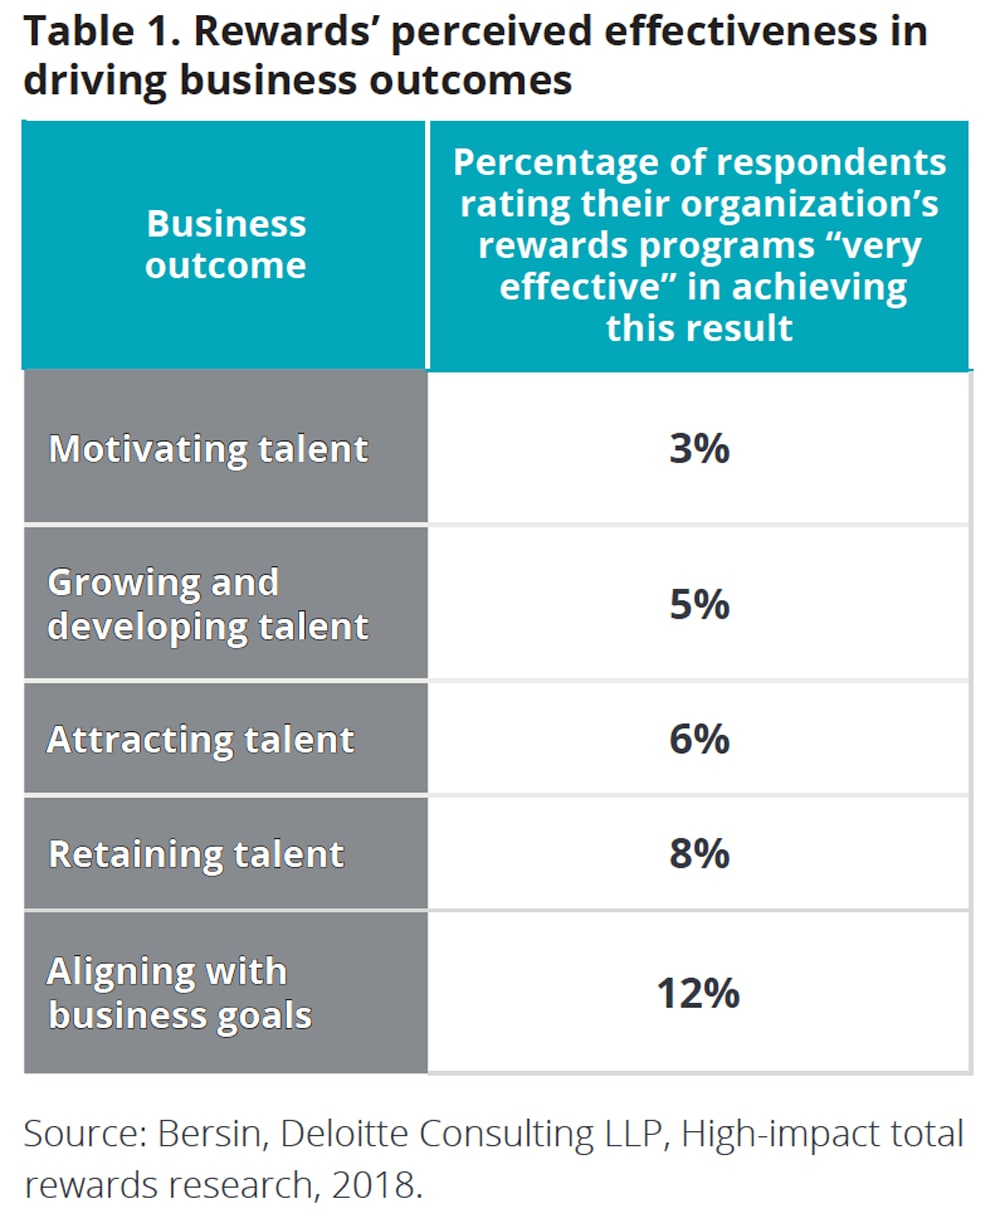 Rewards' perceived effectiveness in driving business outcomes